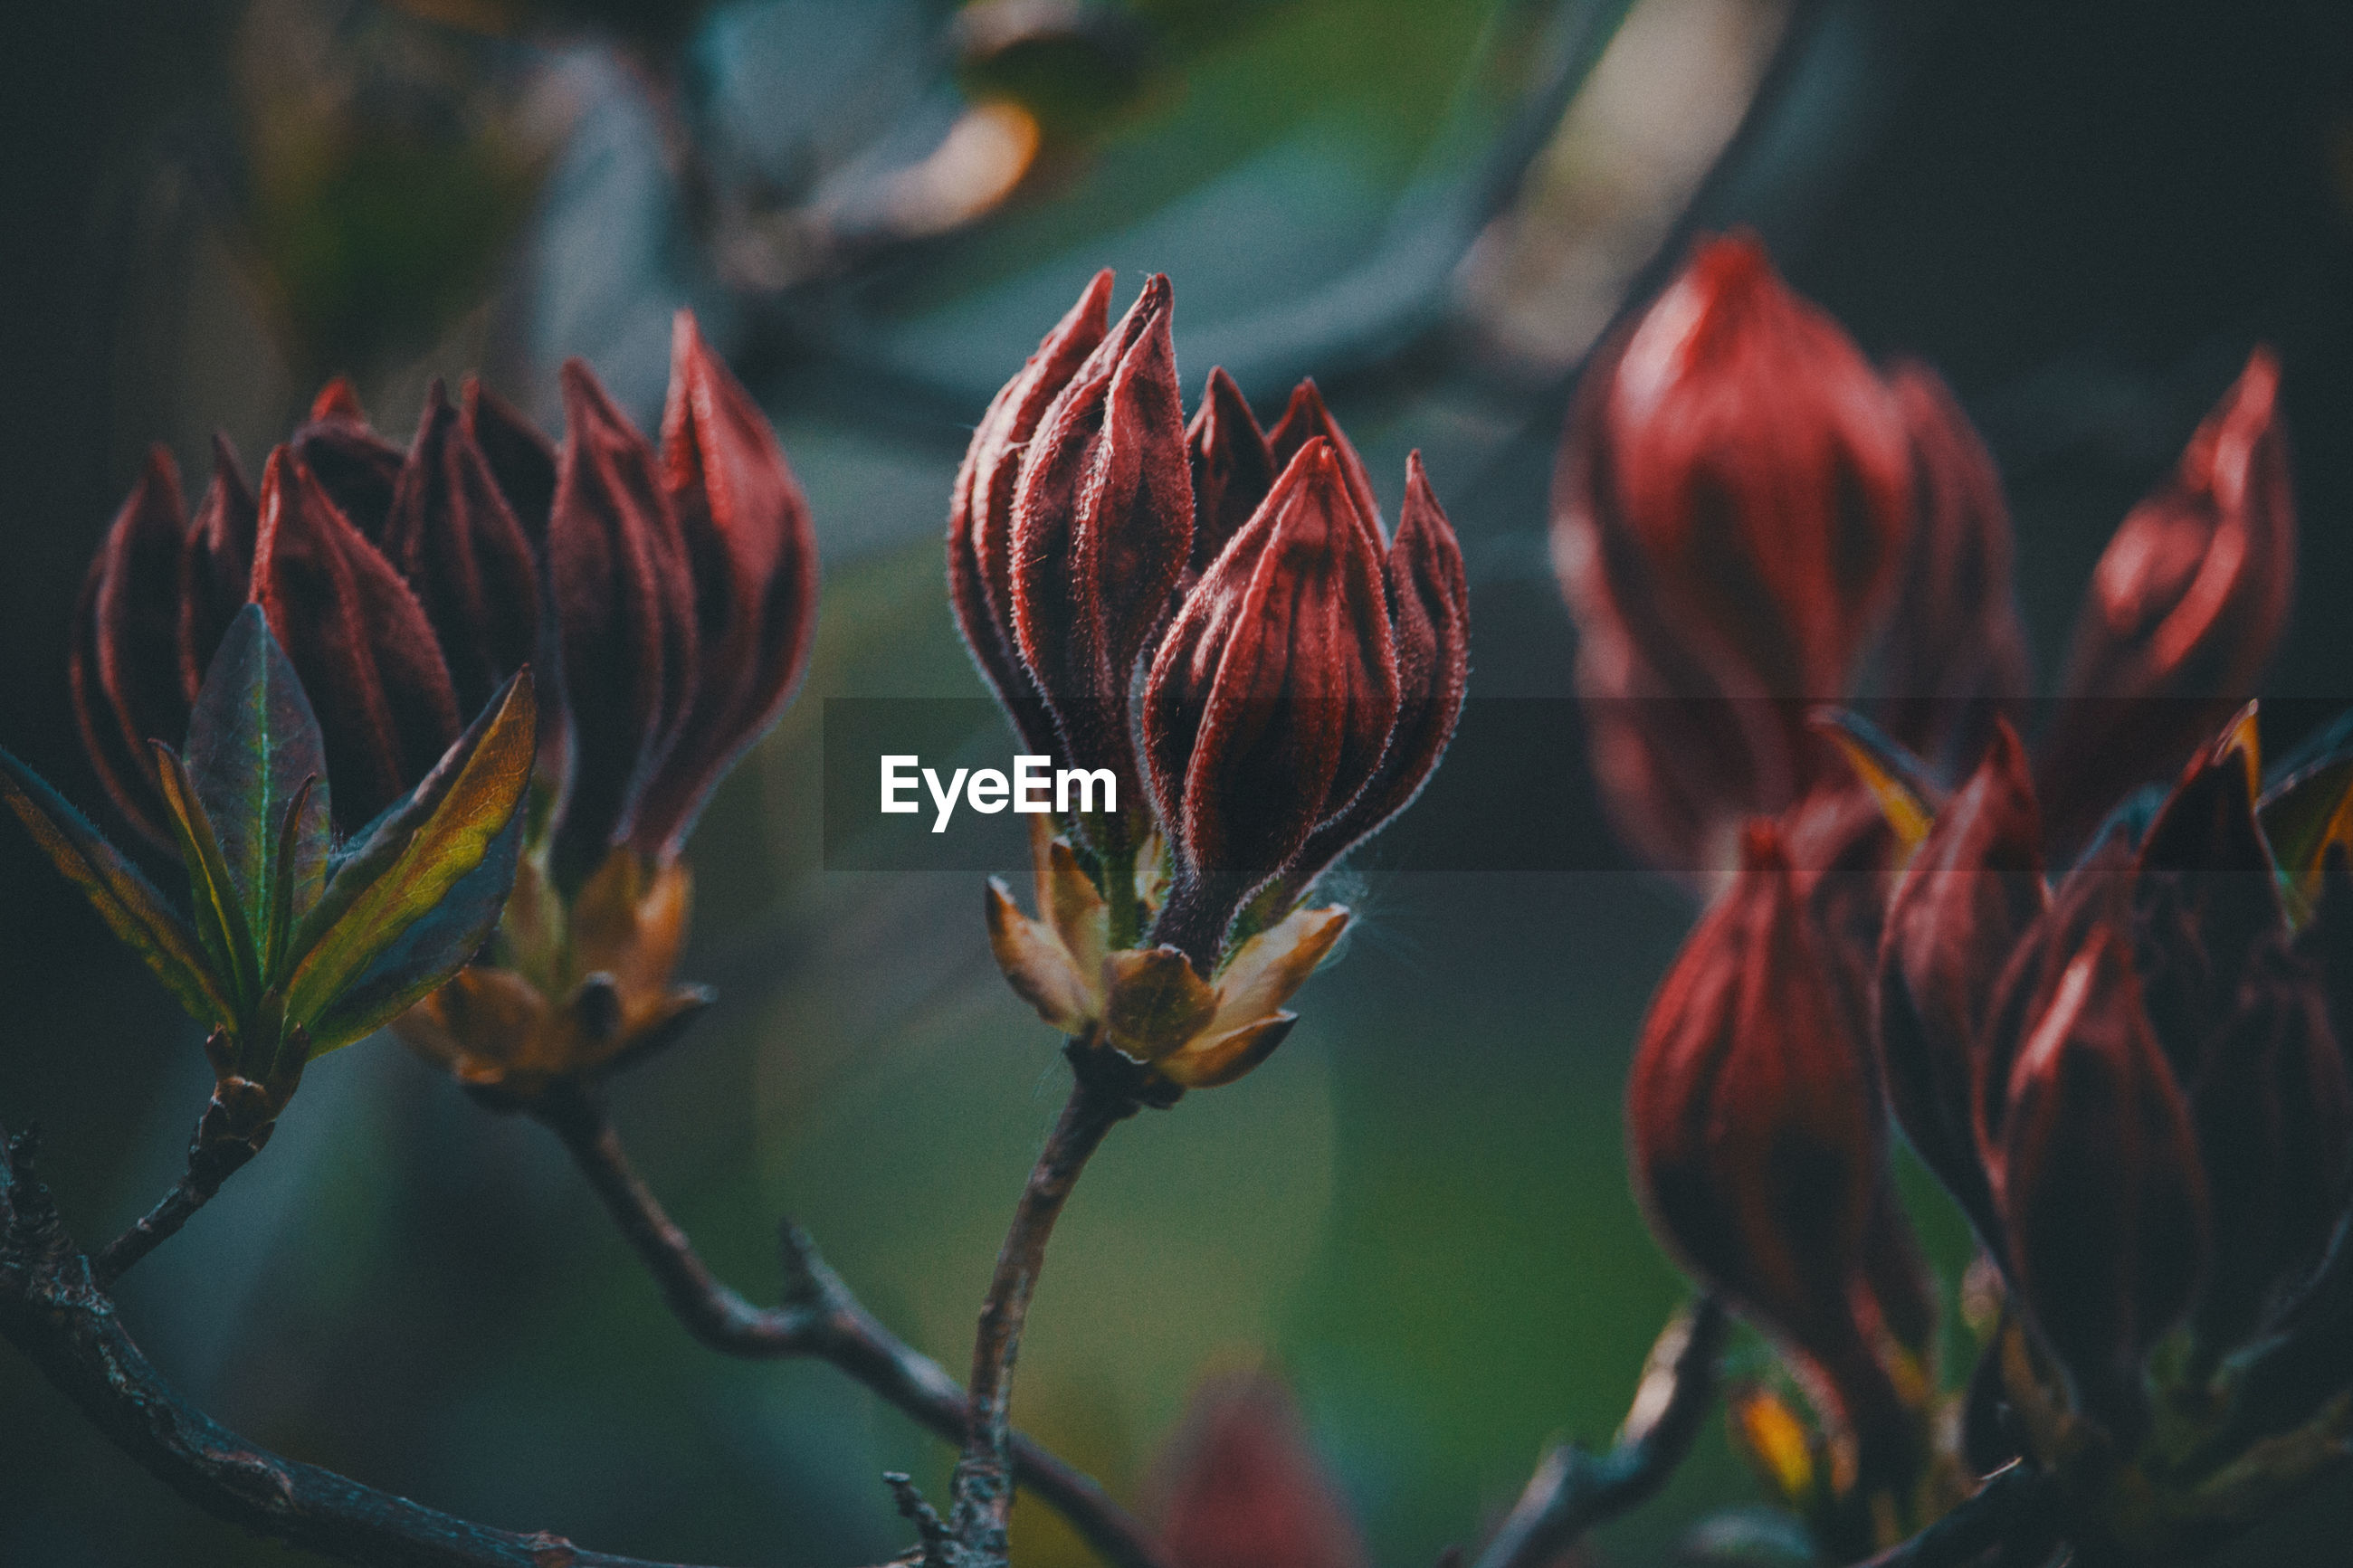 growth, beauty in nature, plant, close-up, vulnerability, freshness, flower, fragility, flowering plant, focus on foreground, nature, no people, day, selective focus, red, plant stem, outdoors, petal, beginnings, bud, flower head, sepal